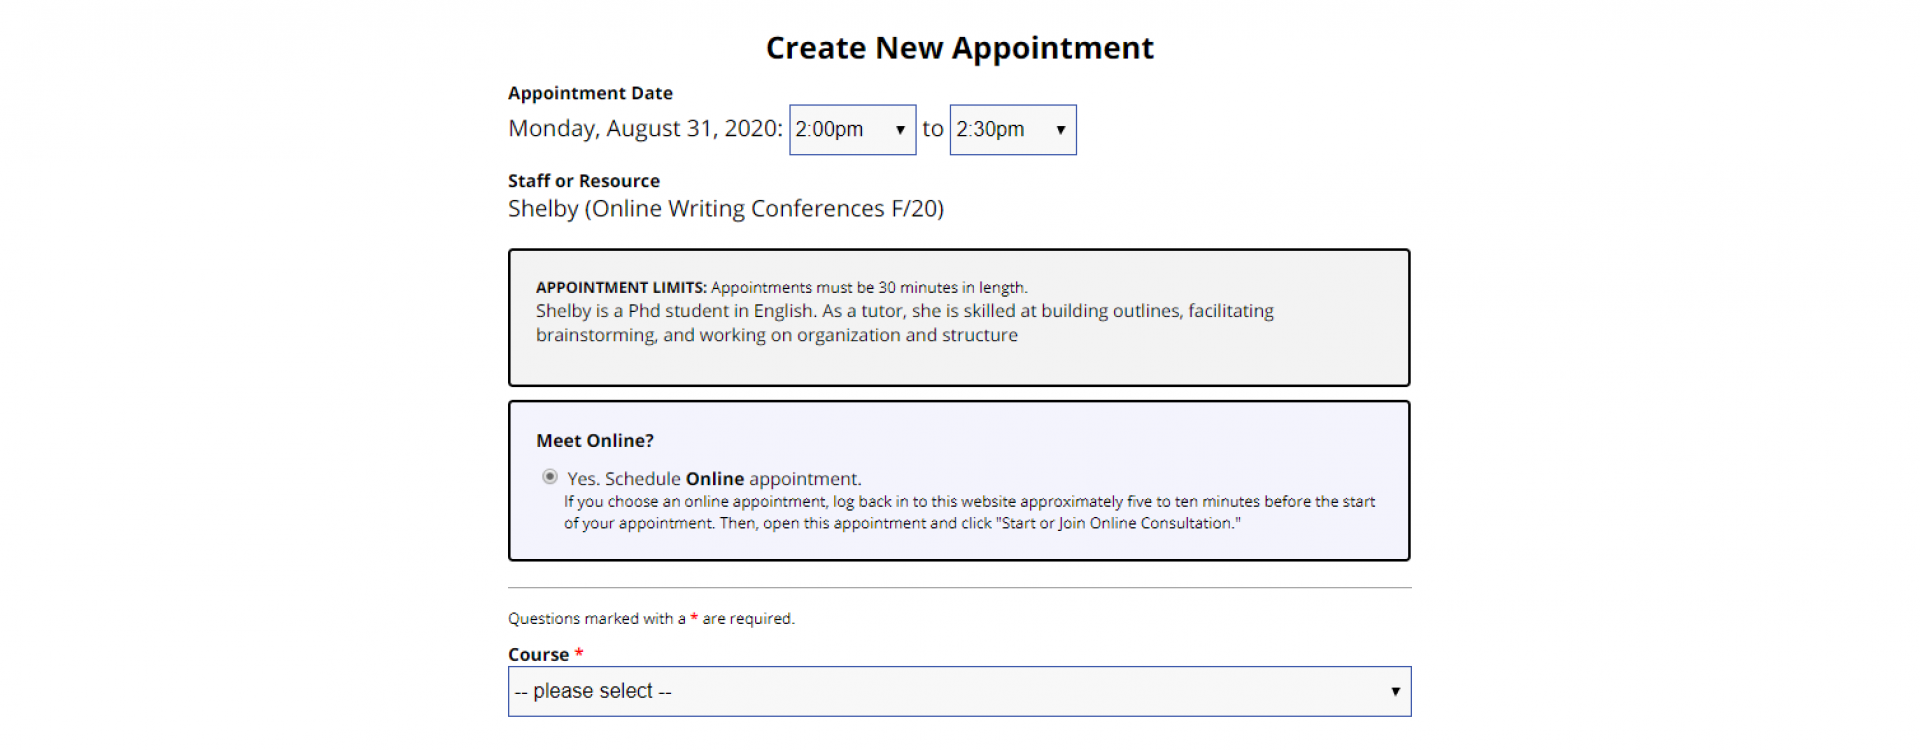 An image of the appointment form on WCOnline.